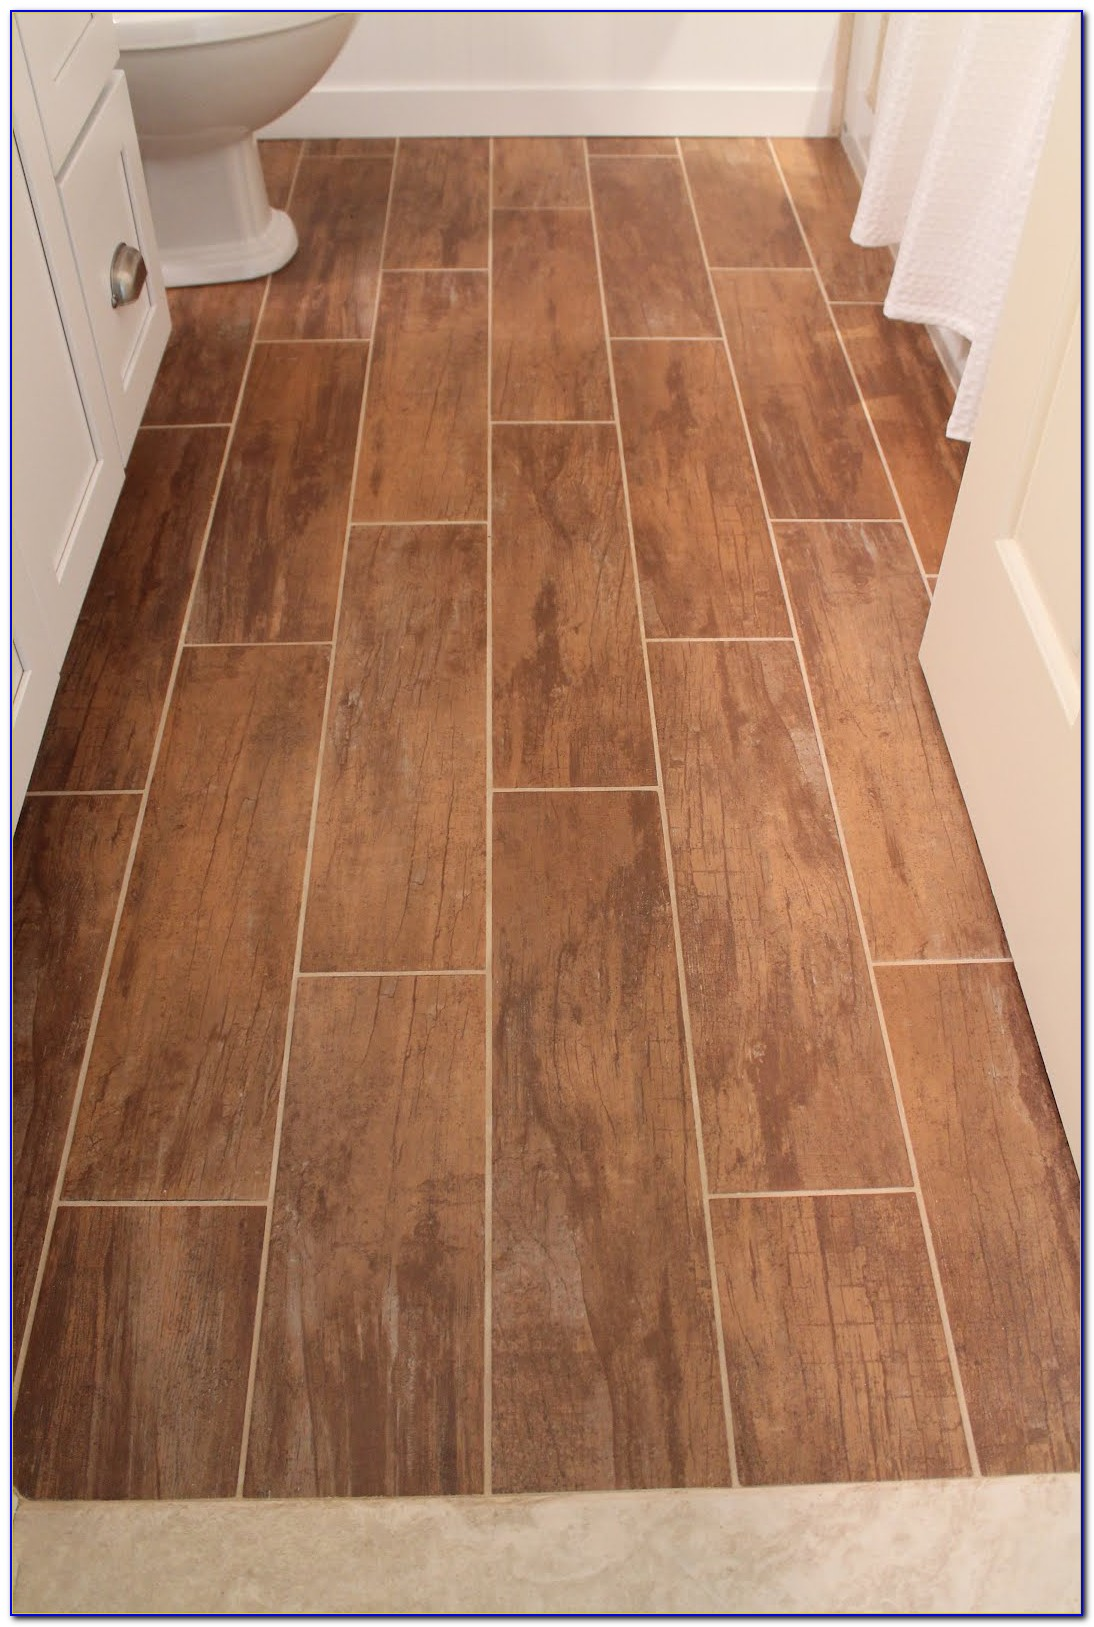 Wood Grain Tile Floor Images